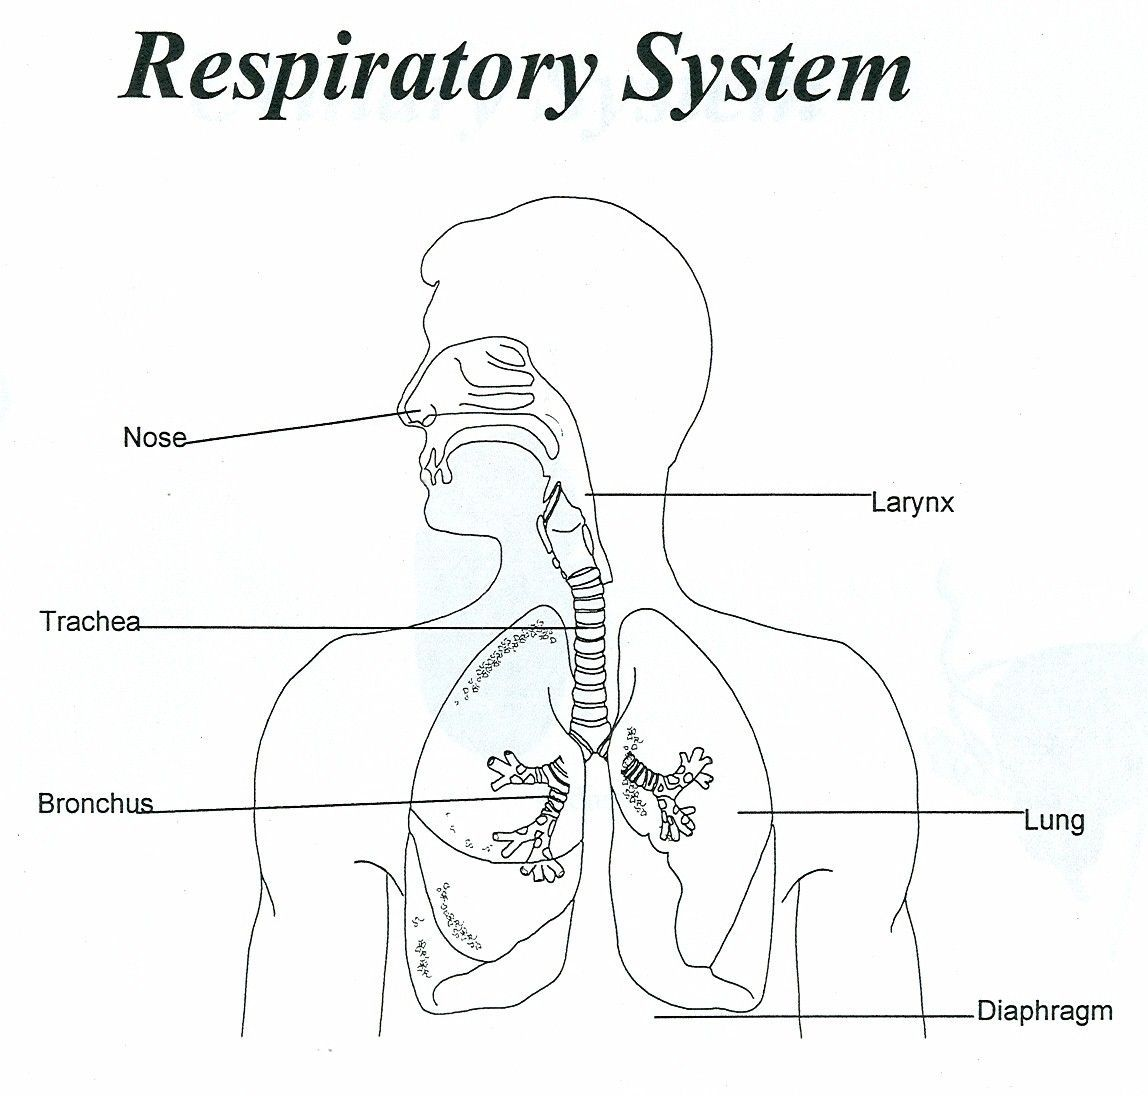 Download Or Print This Amazing Coloring Page Respiratory System Unlabeled Human Anatomy Diagram Human Respiratory System Respiratory System Respiratory